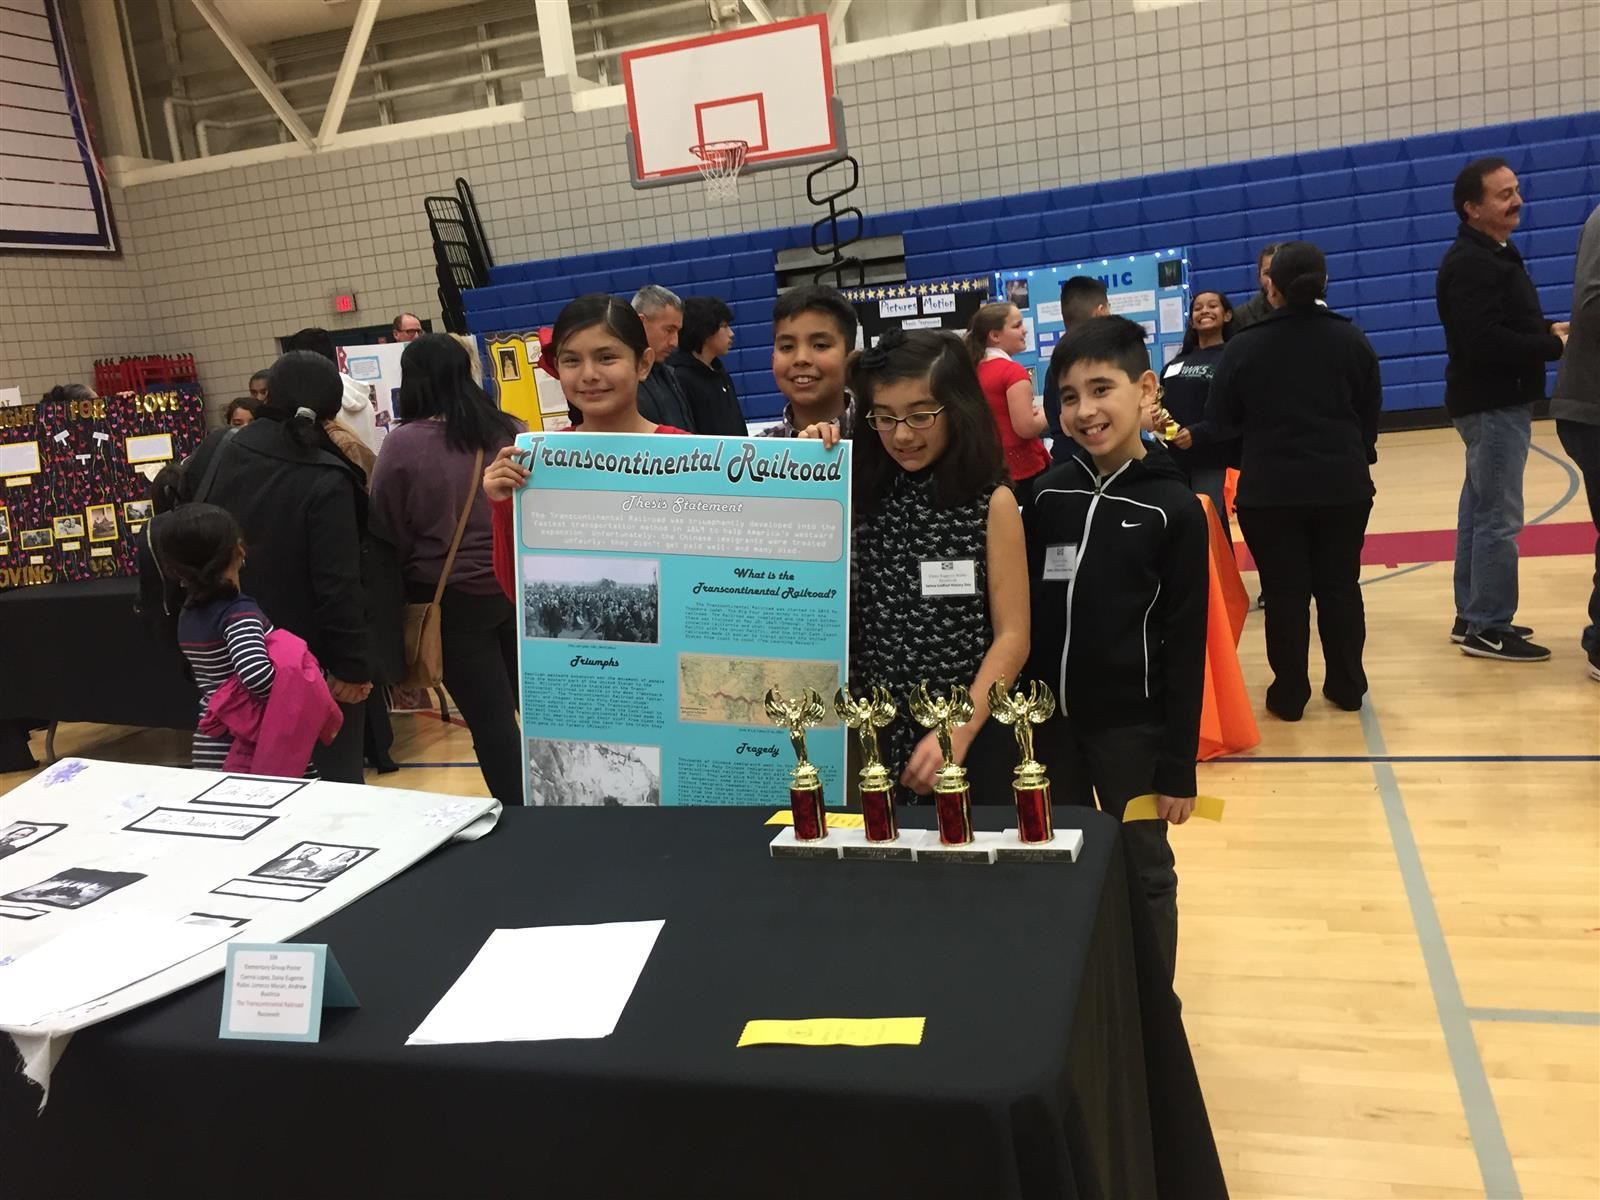 Roosevelt 4th Grade students with their 1st place poster